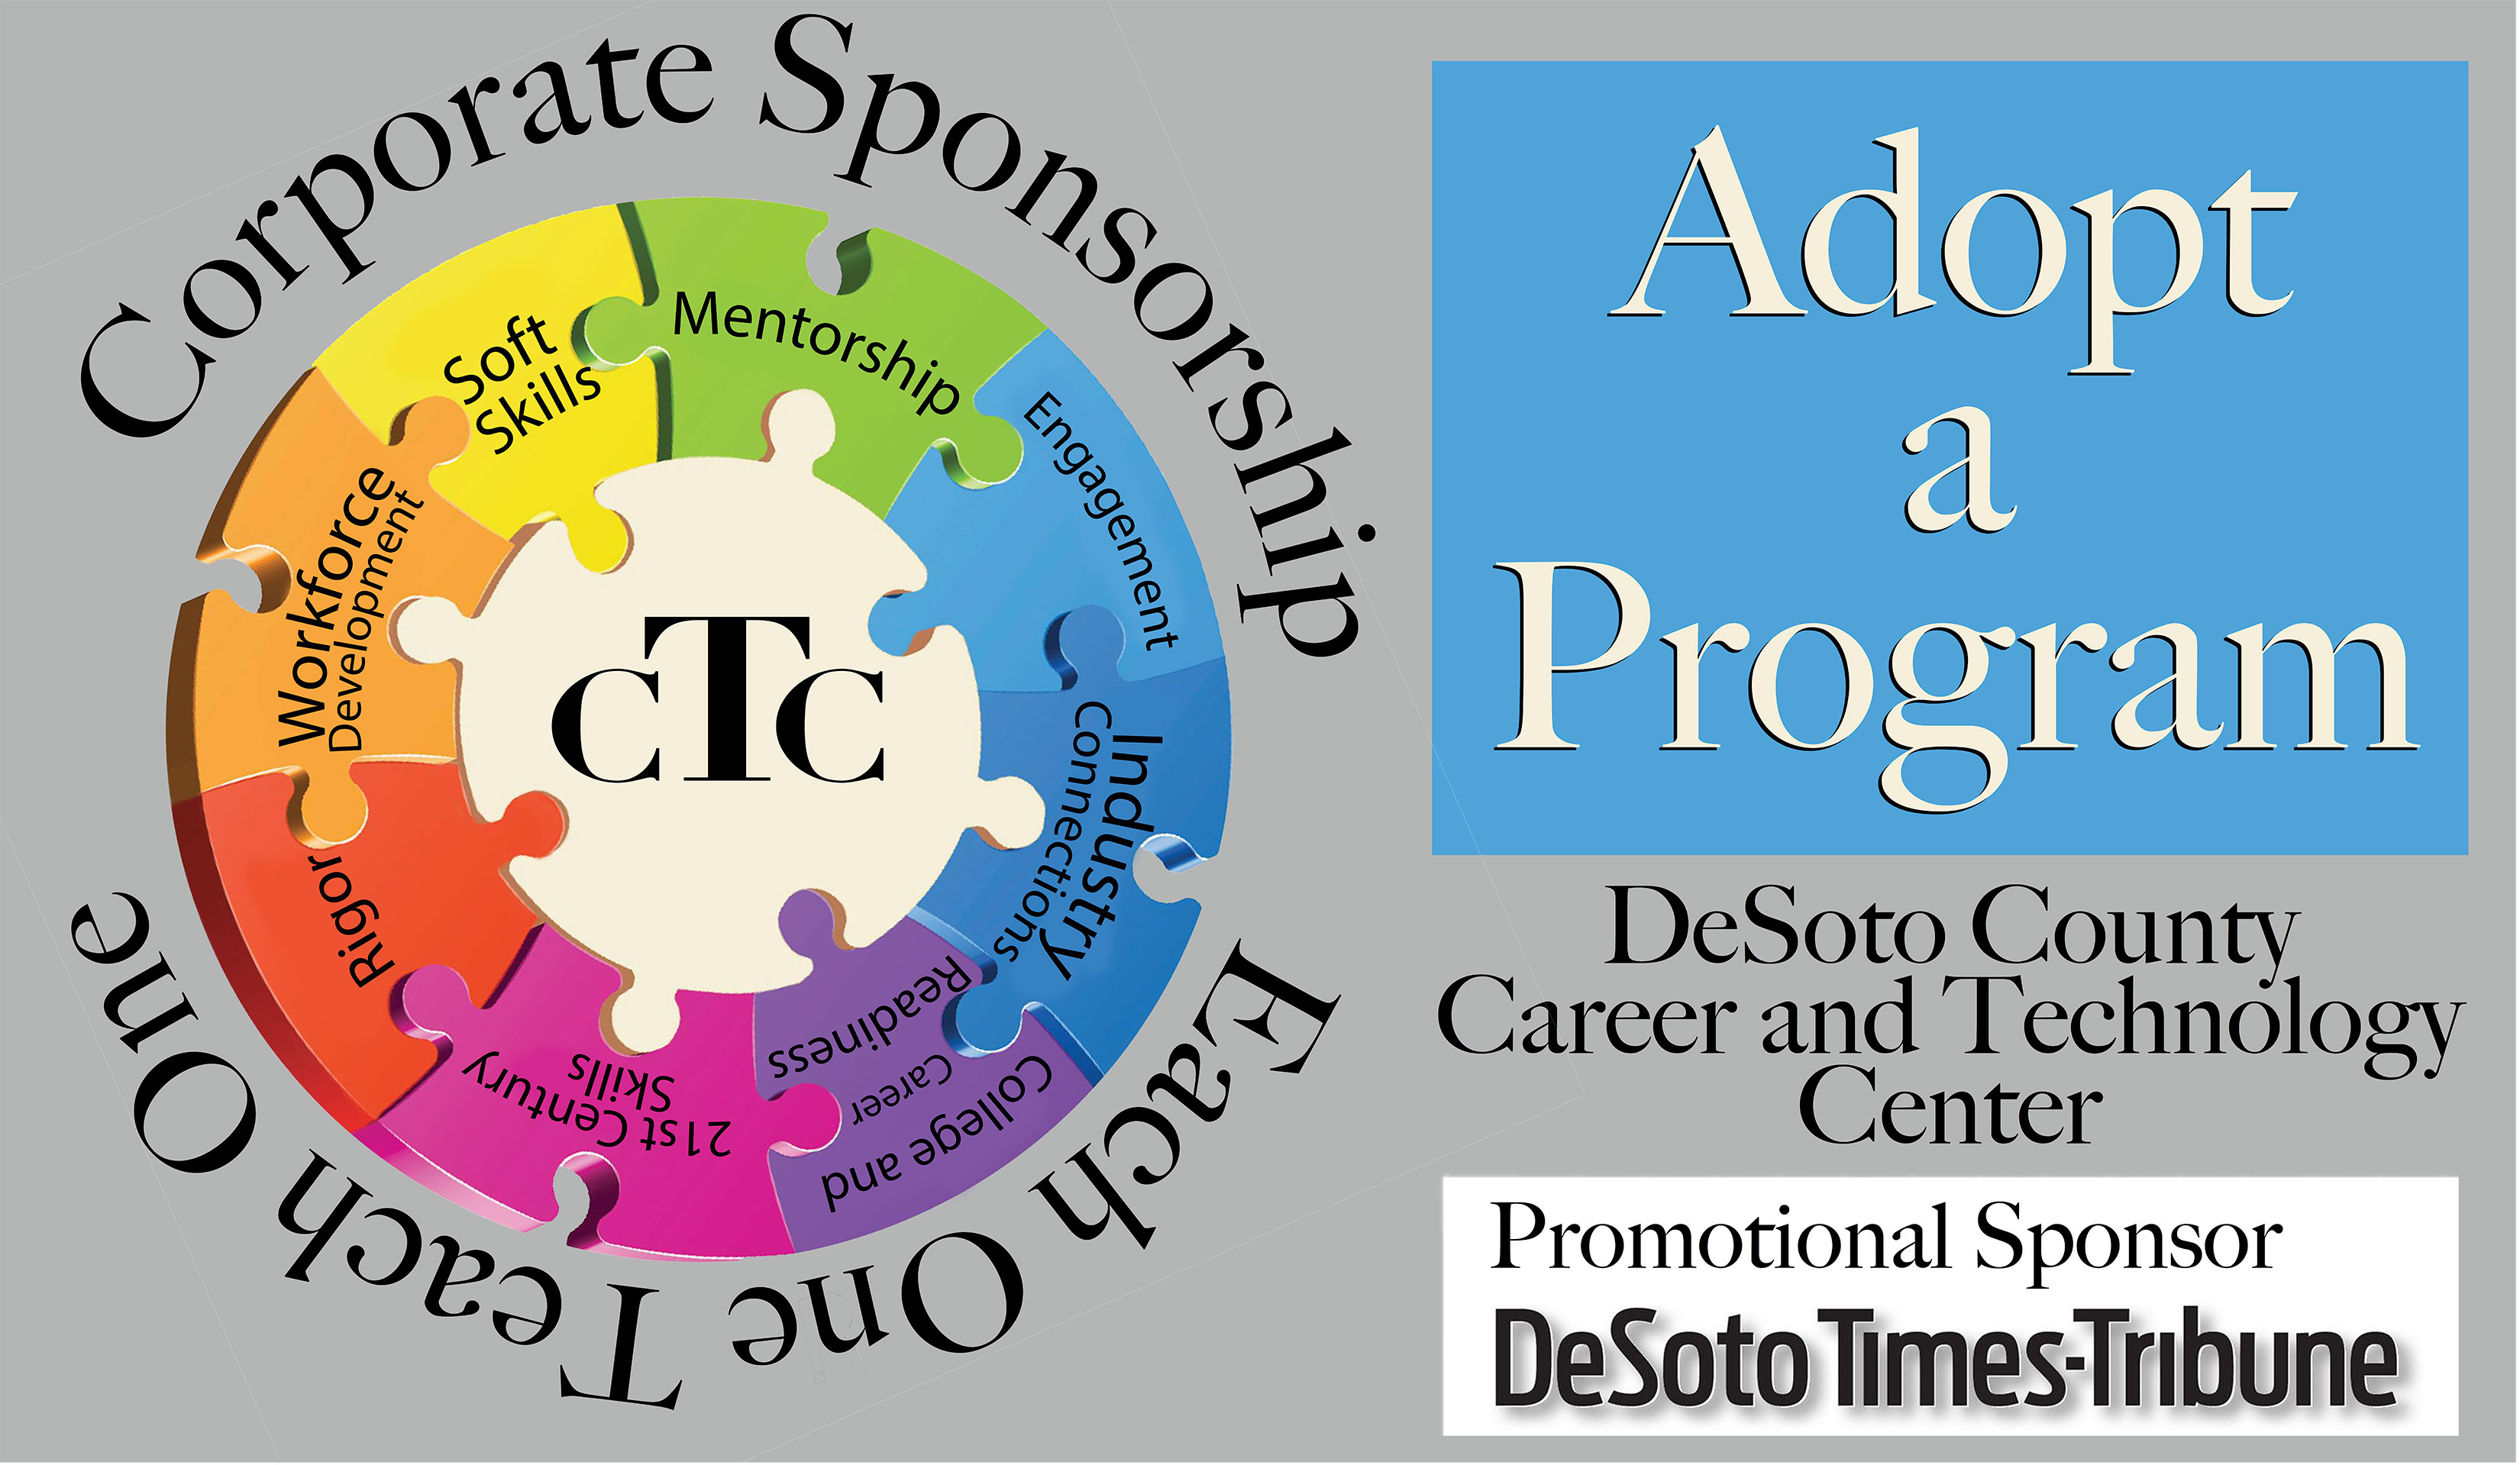 Adopt a Program Image - It displays how to become a corporate sponsor or donate time through the Each One Teach One Initiative